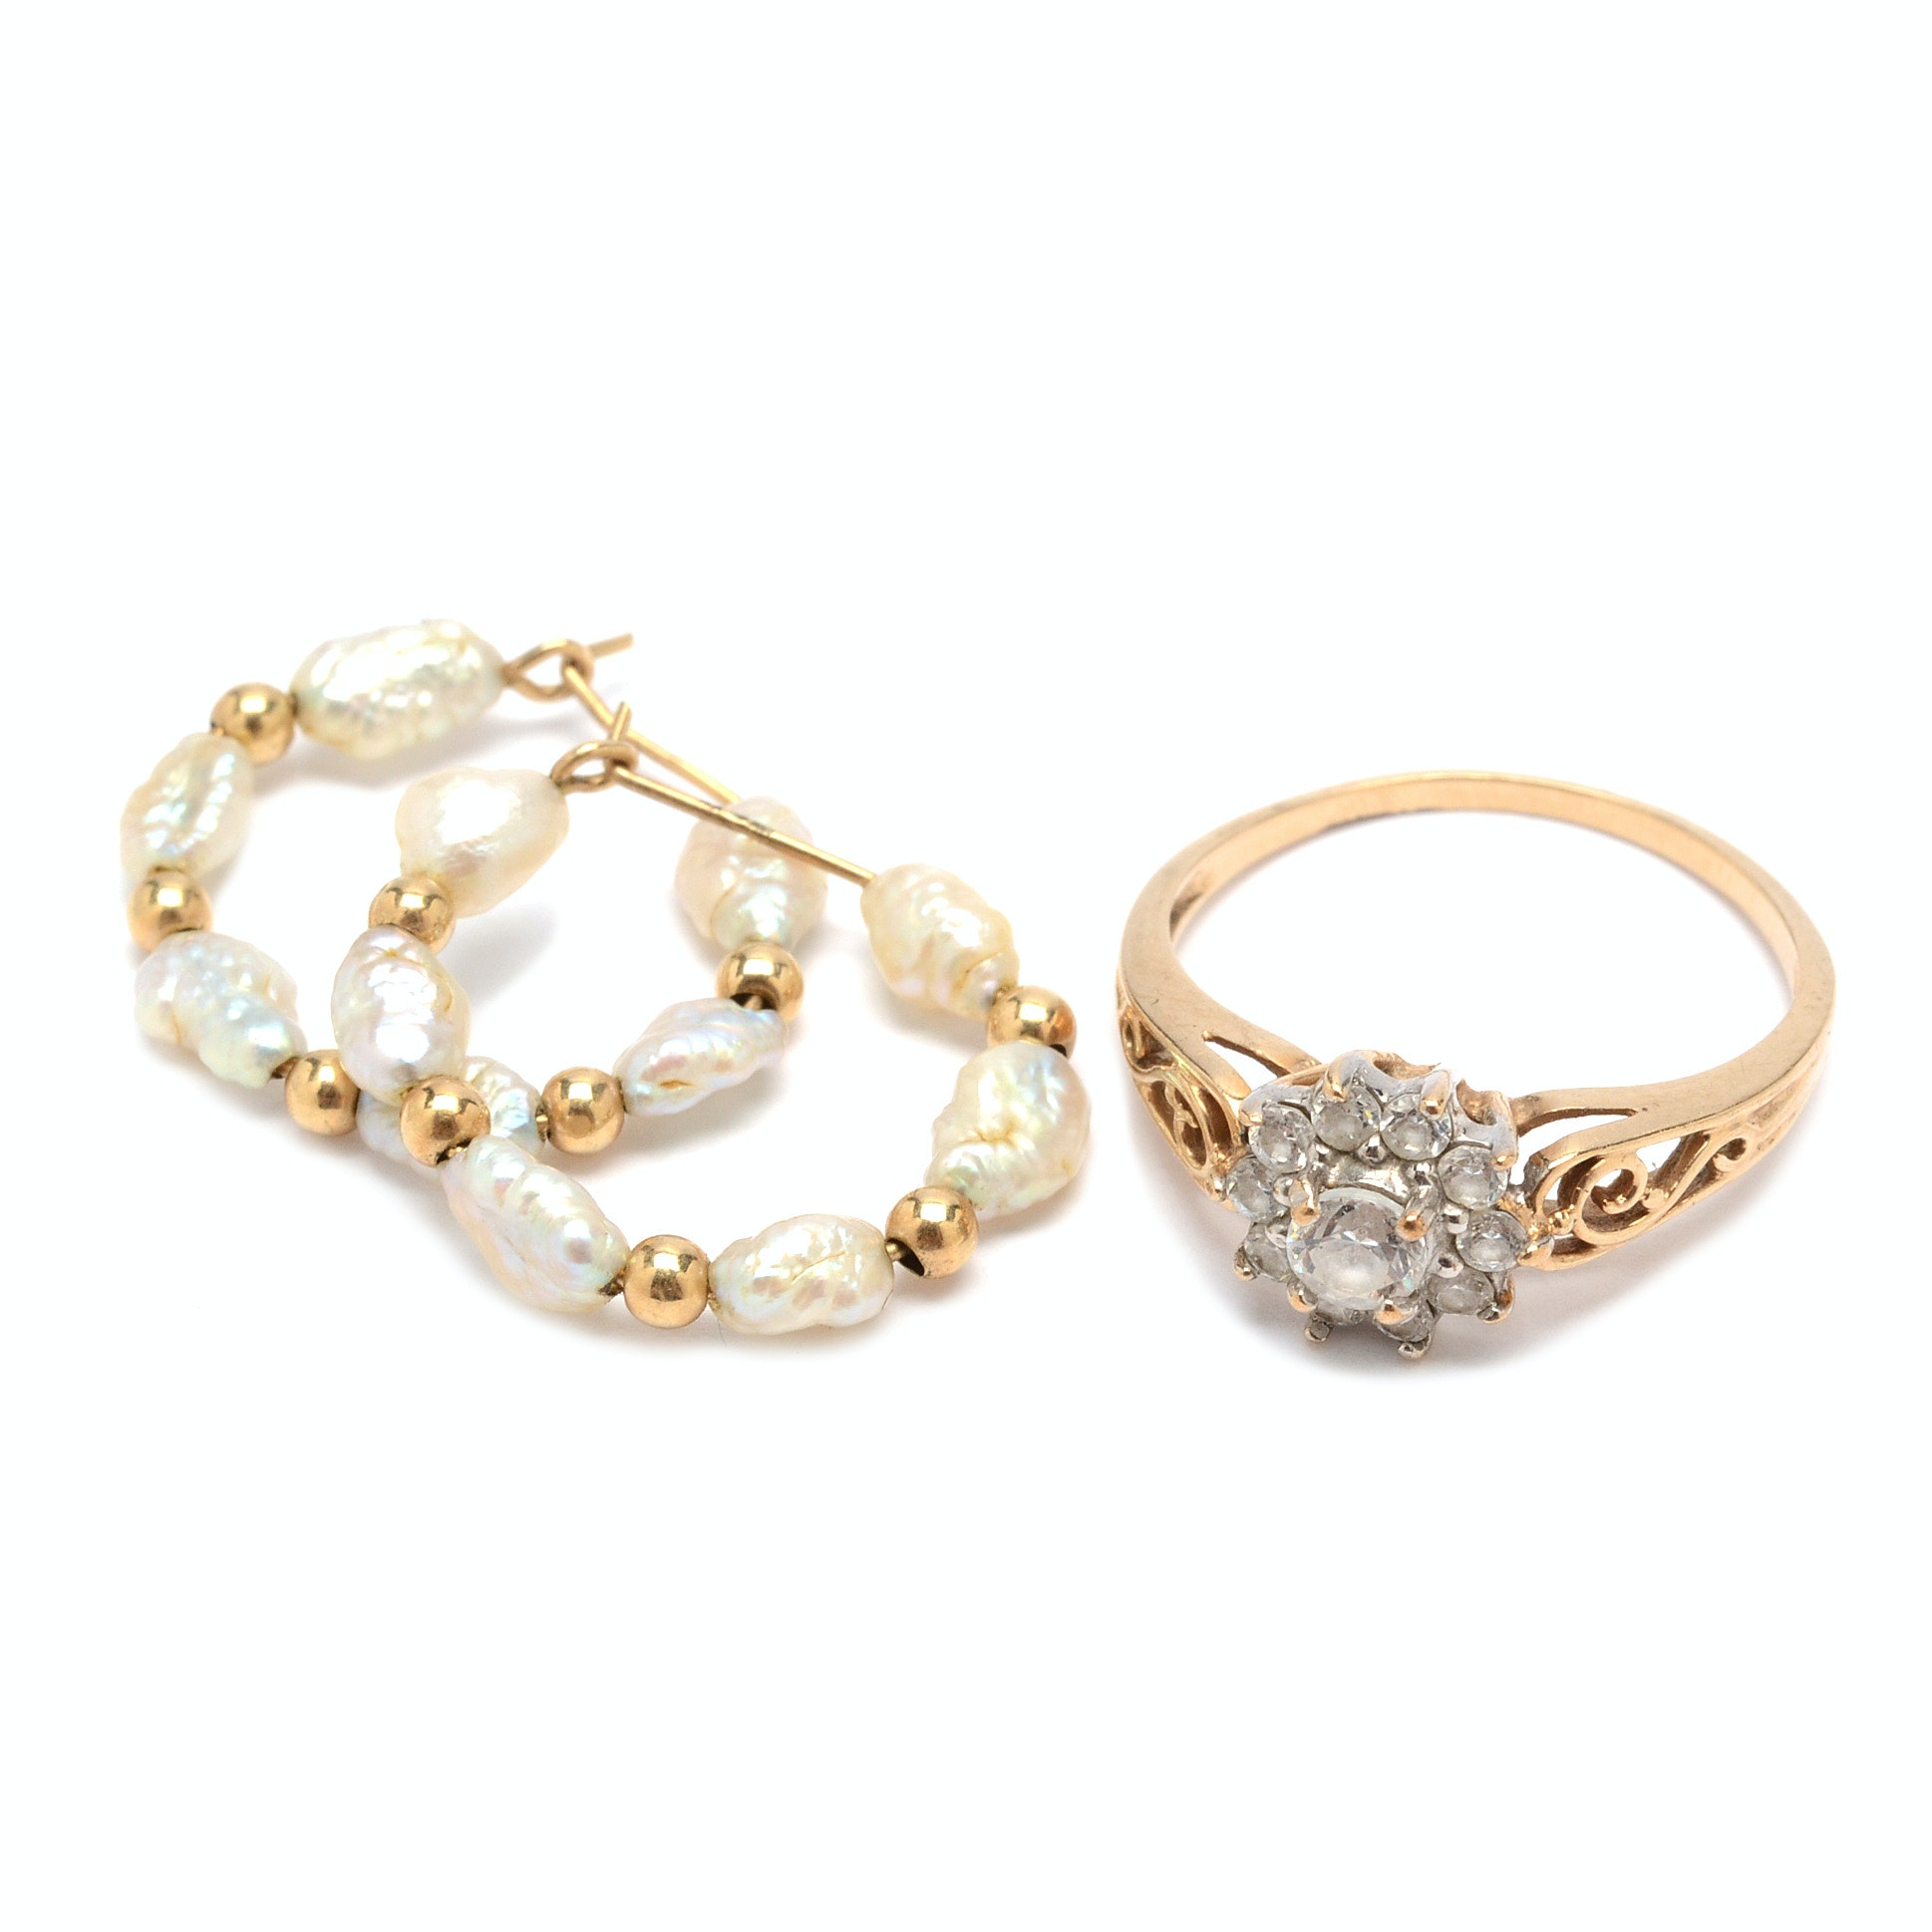 14K Gold Freshwater Pearl Earrings and 10K Gold Cubic Zirconia Ring